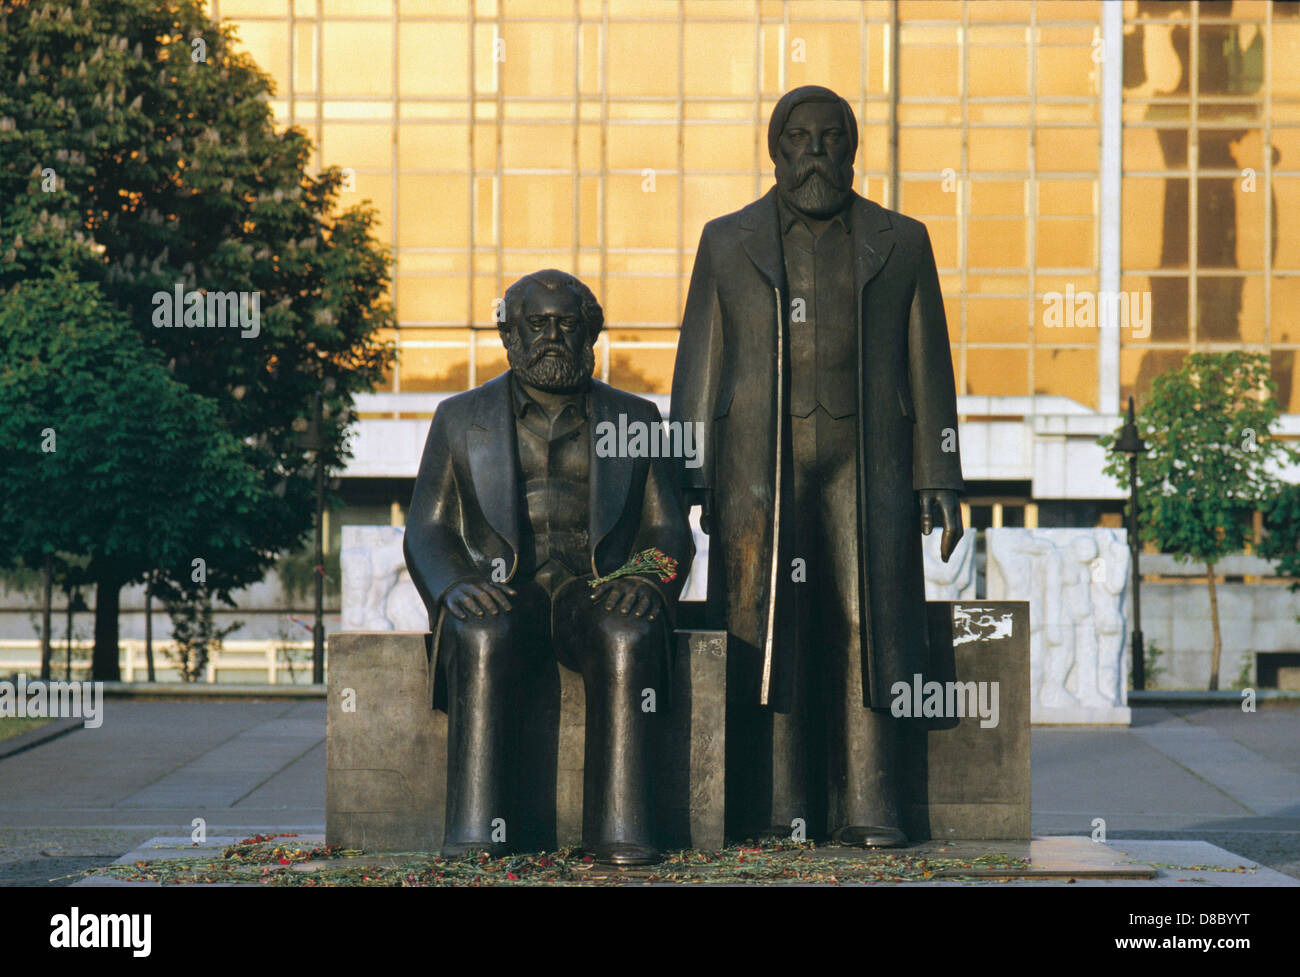 Two statue at monument of german communists, Berlin, Germany - Stock Image